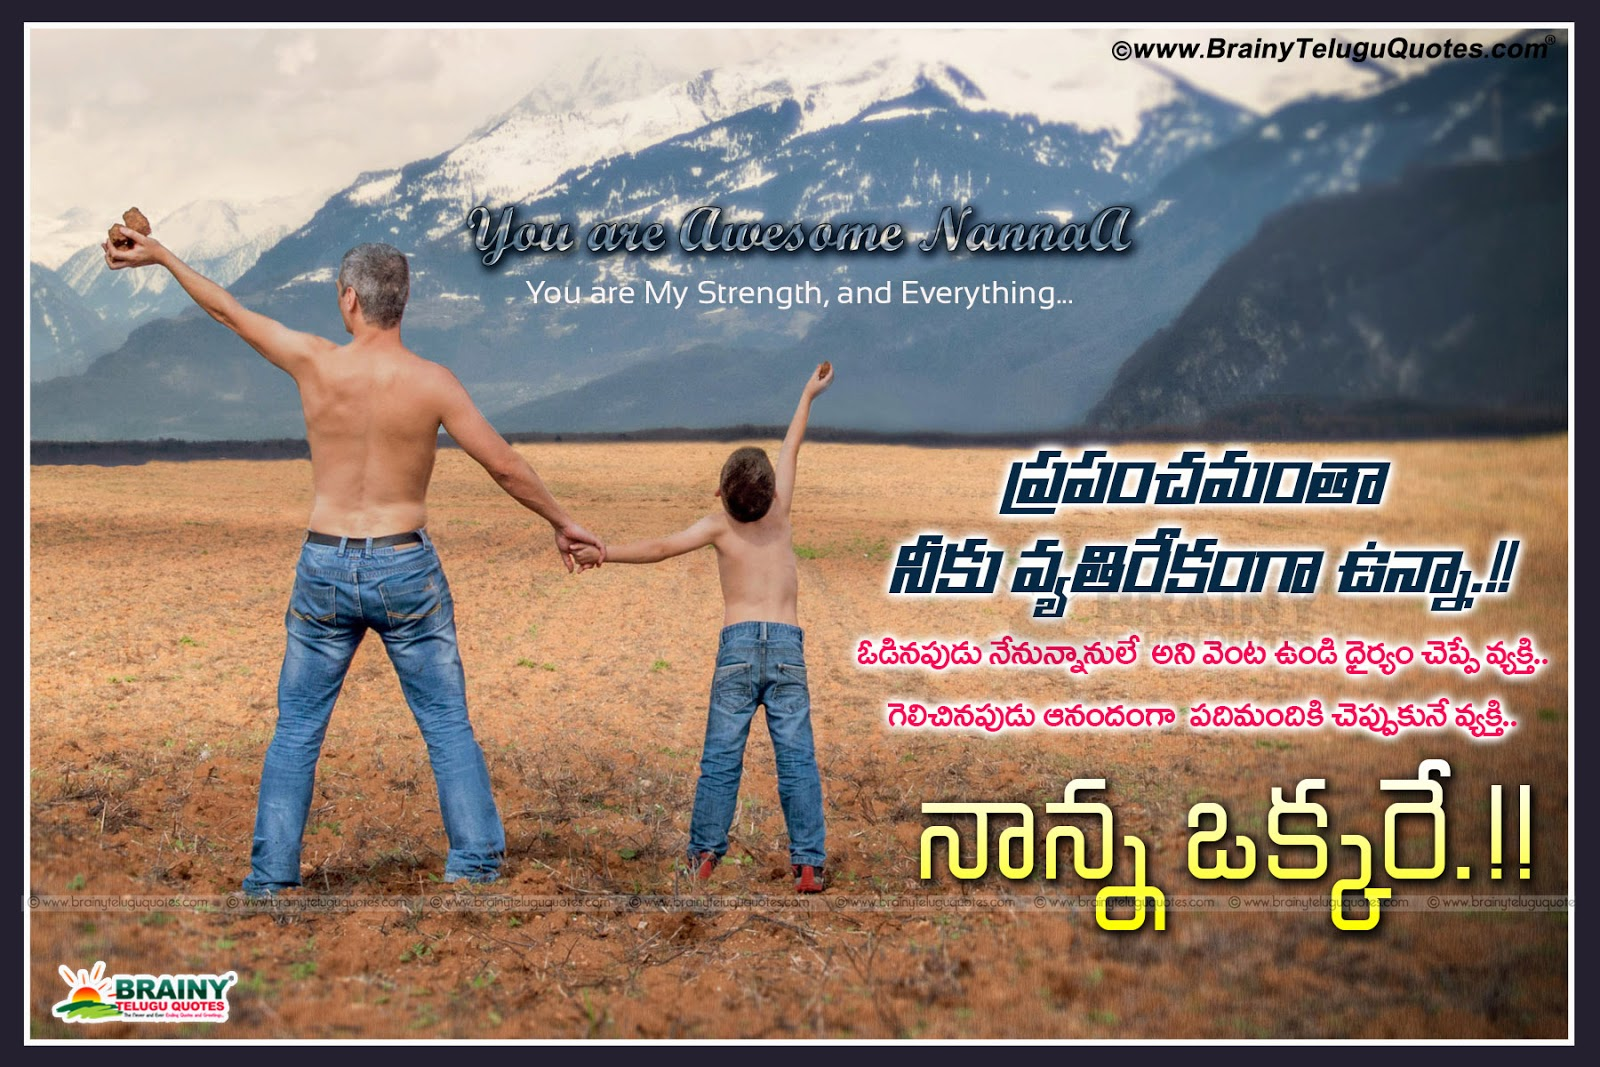 Dad And Daughter Quotes Wallpapers: I Love You Messages For Dad Quotes In Telugu With Hd